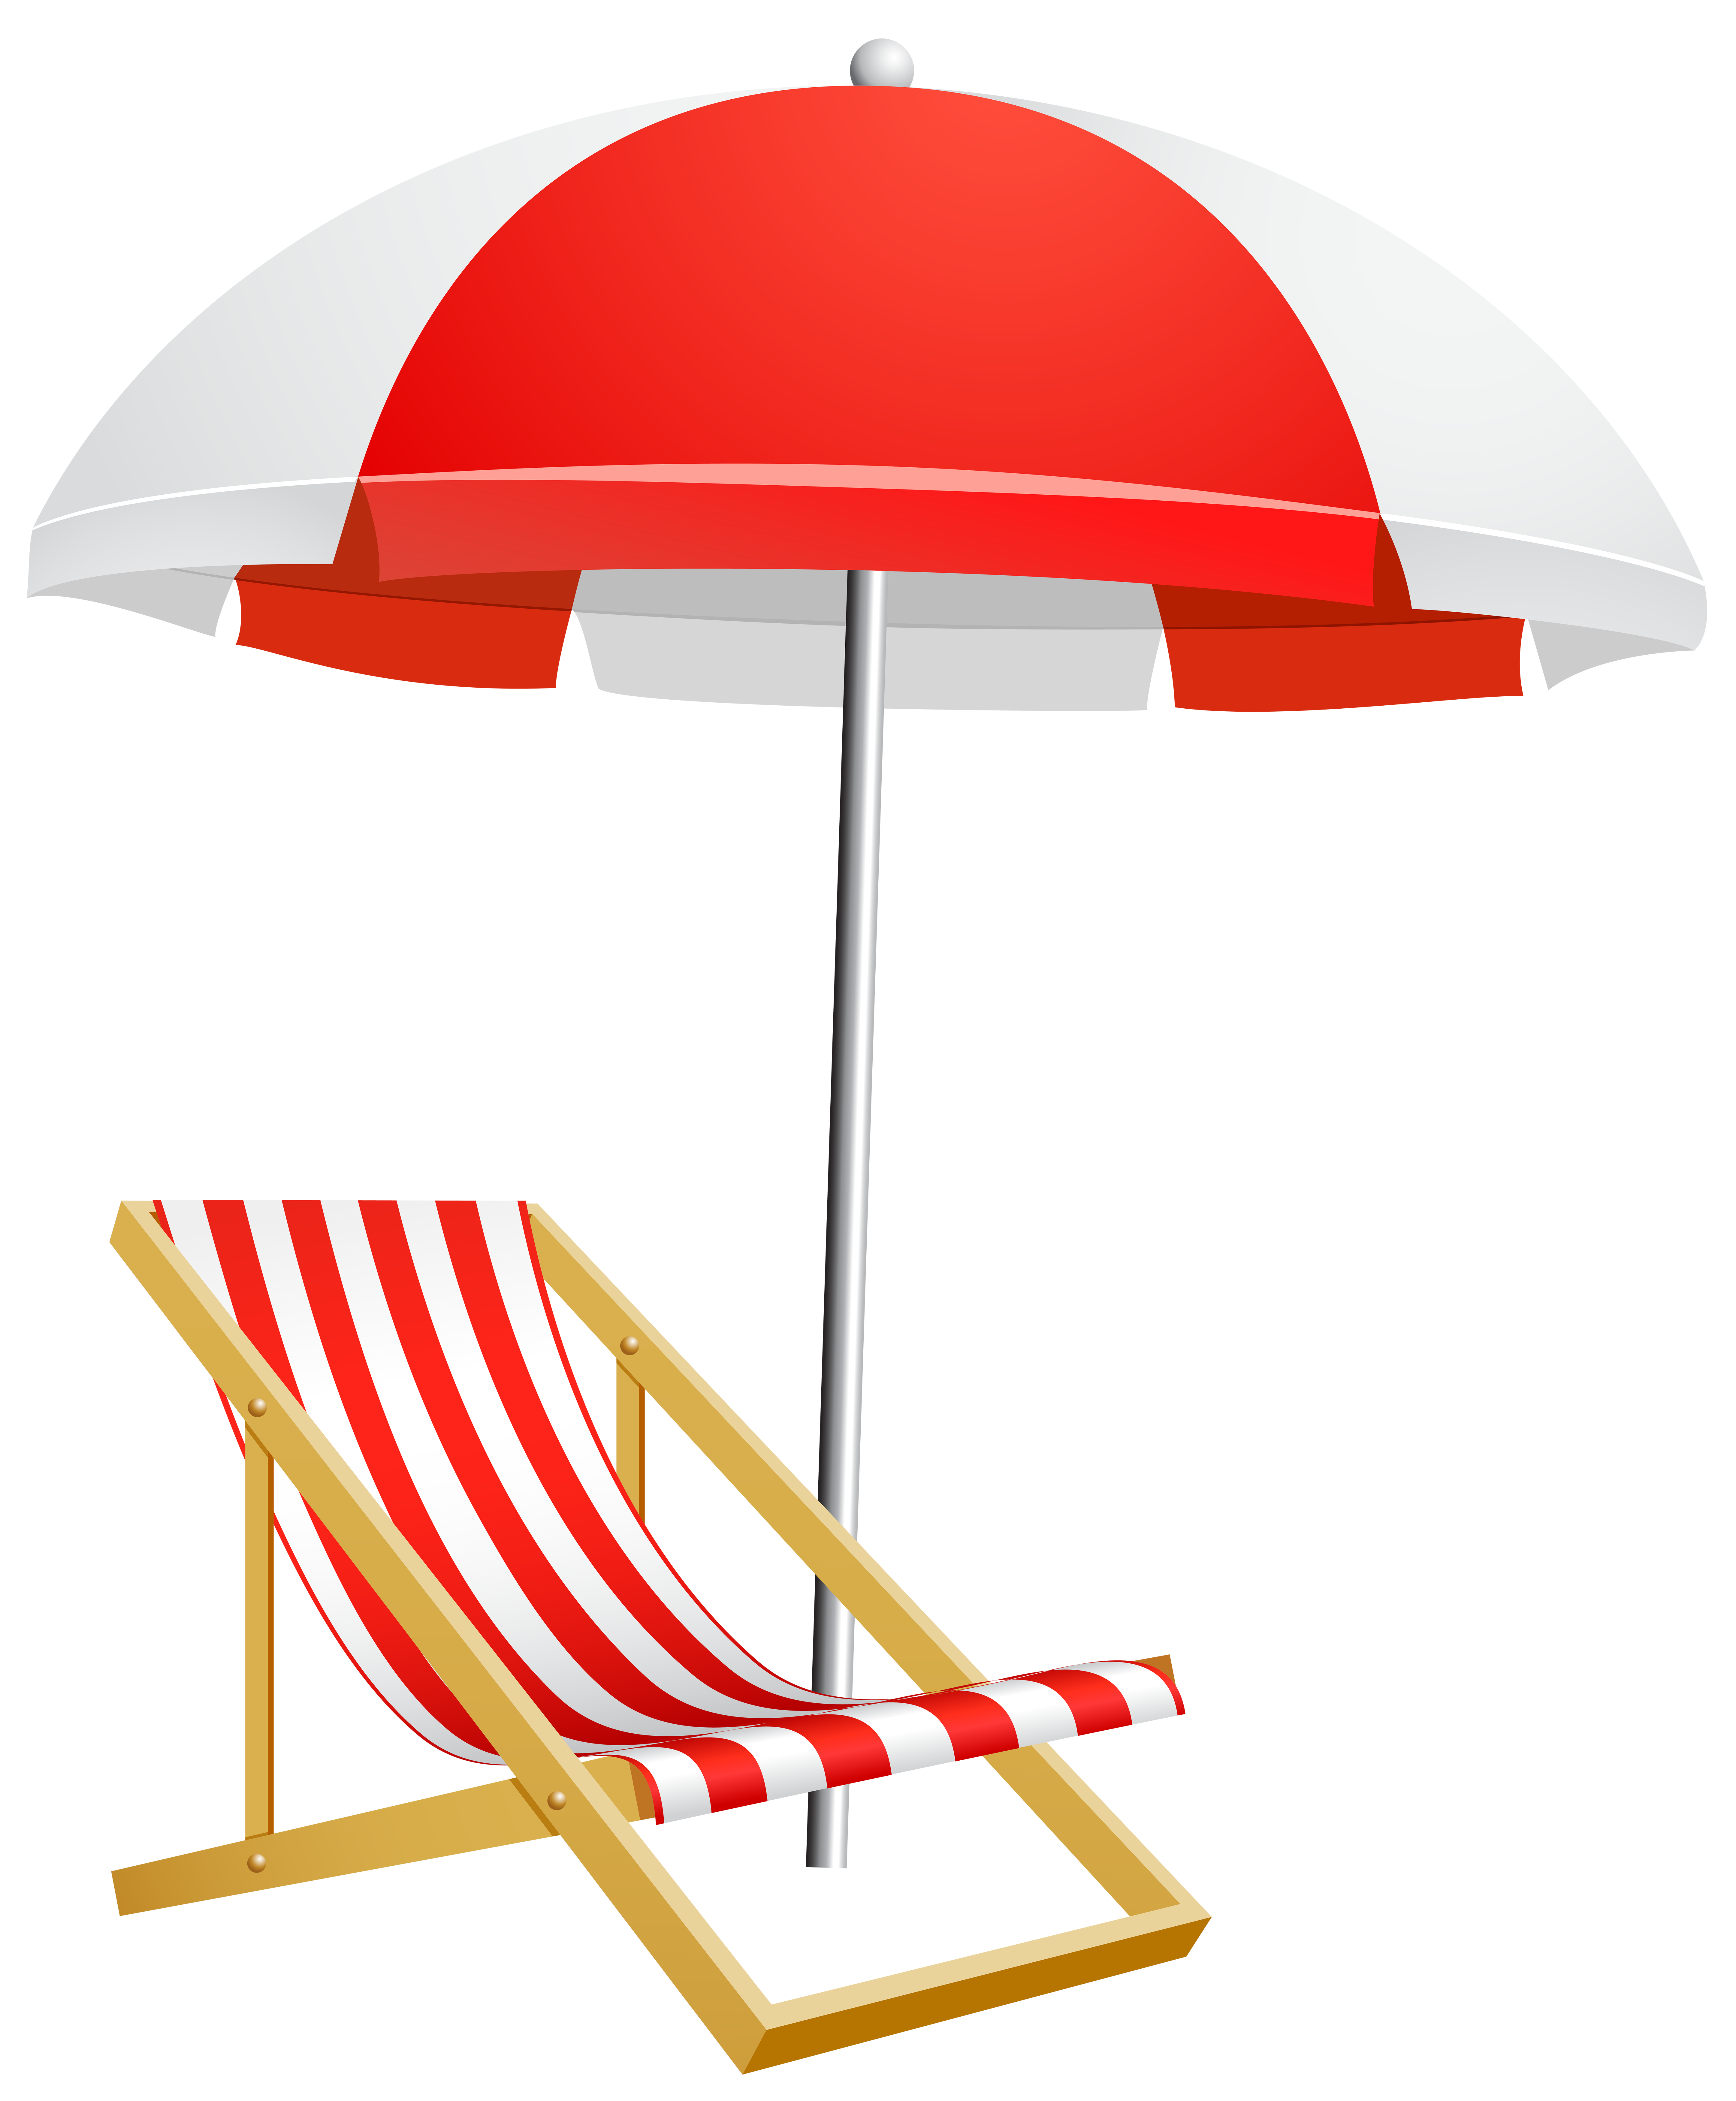 Beach umbrella with sun clipart transparent stock Beach Umbrella Silhouette at GetDrawings.com | Free for personal use ... transparent stock